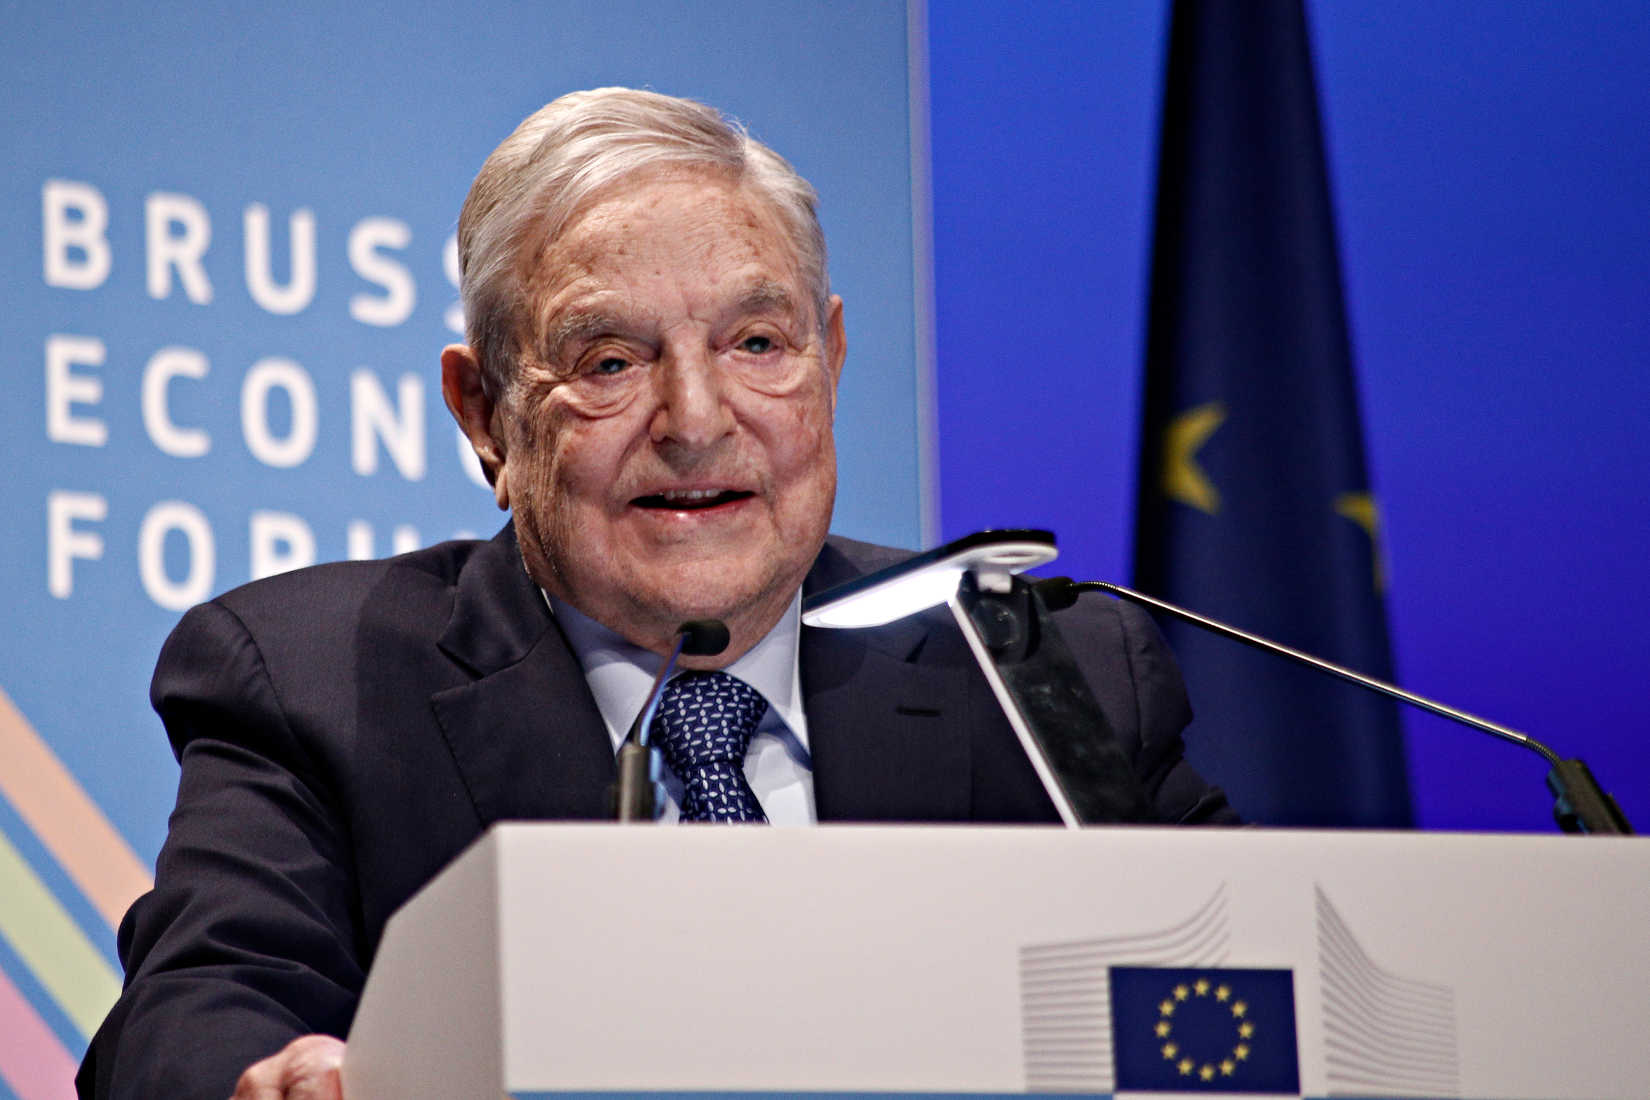 George Soros Aims to Make Gun Companies Liable for Murder